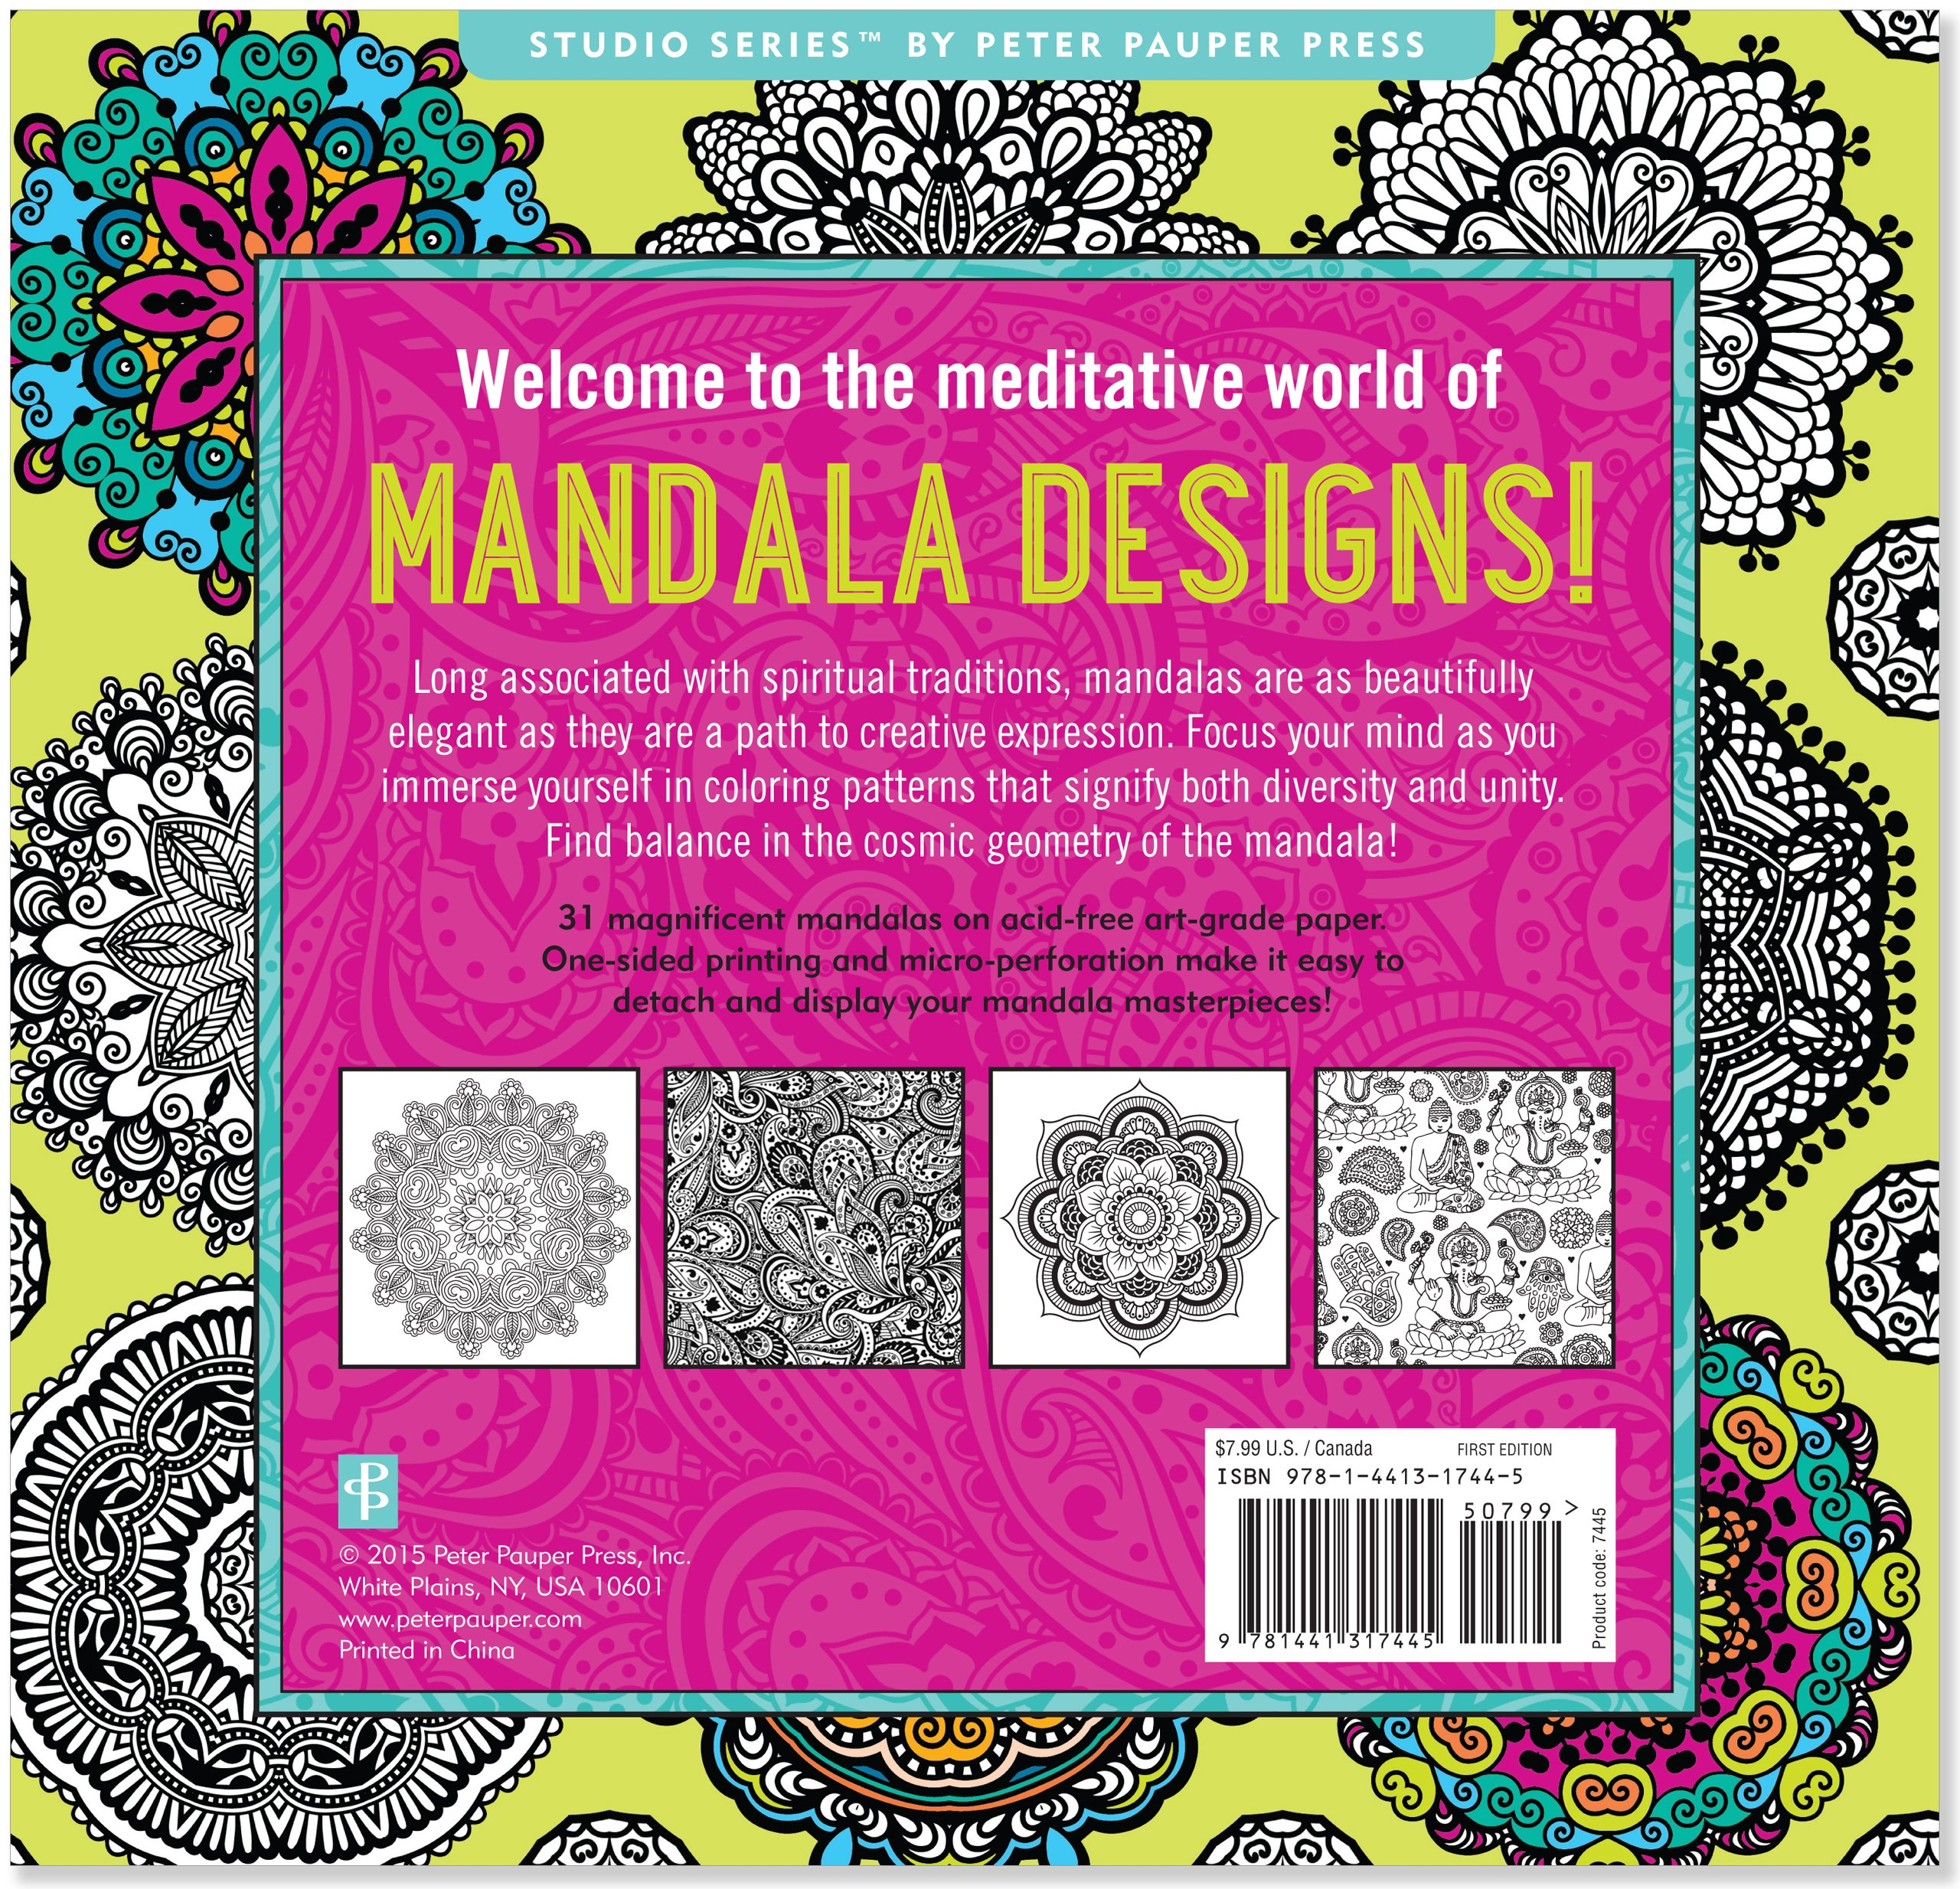 Stress coloring books - Amazon Com Mandala Designs Adult Coloring Book 31 Stress Relieving Designs Studio 9781441317445 Peter Pauper Press Books